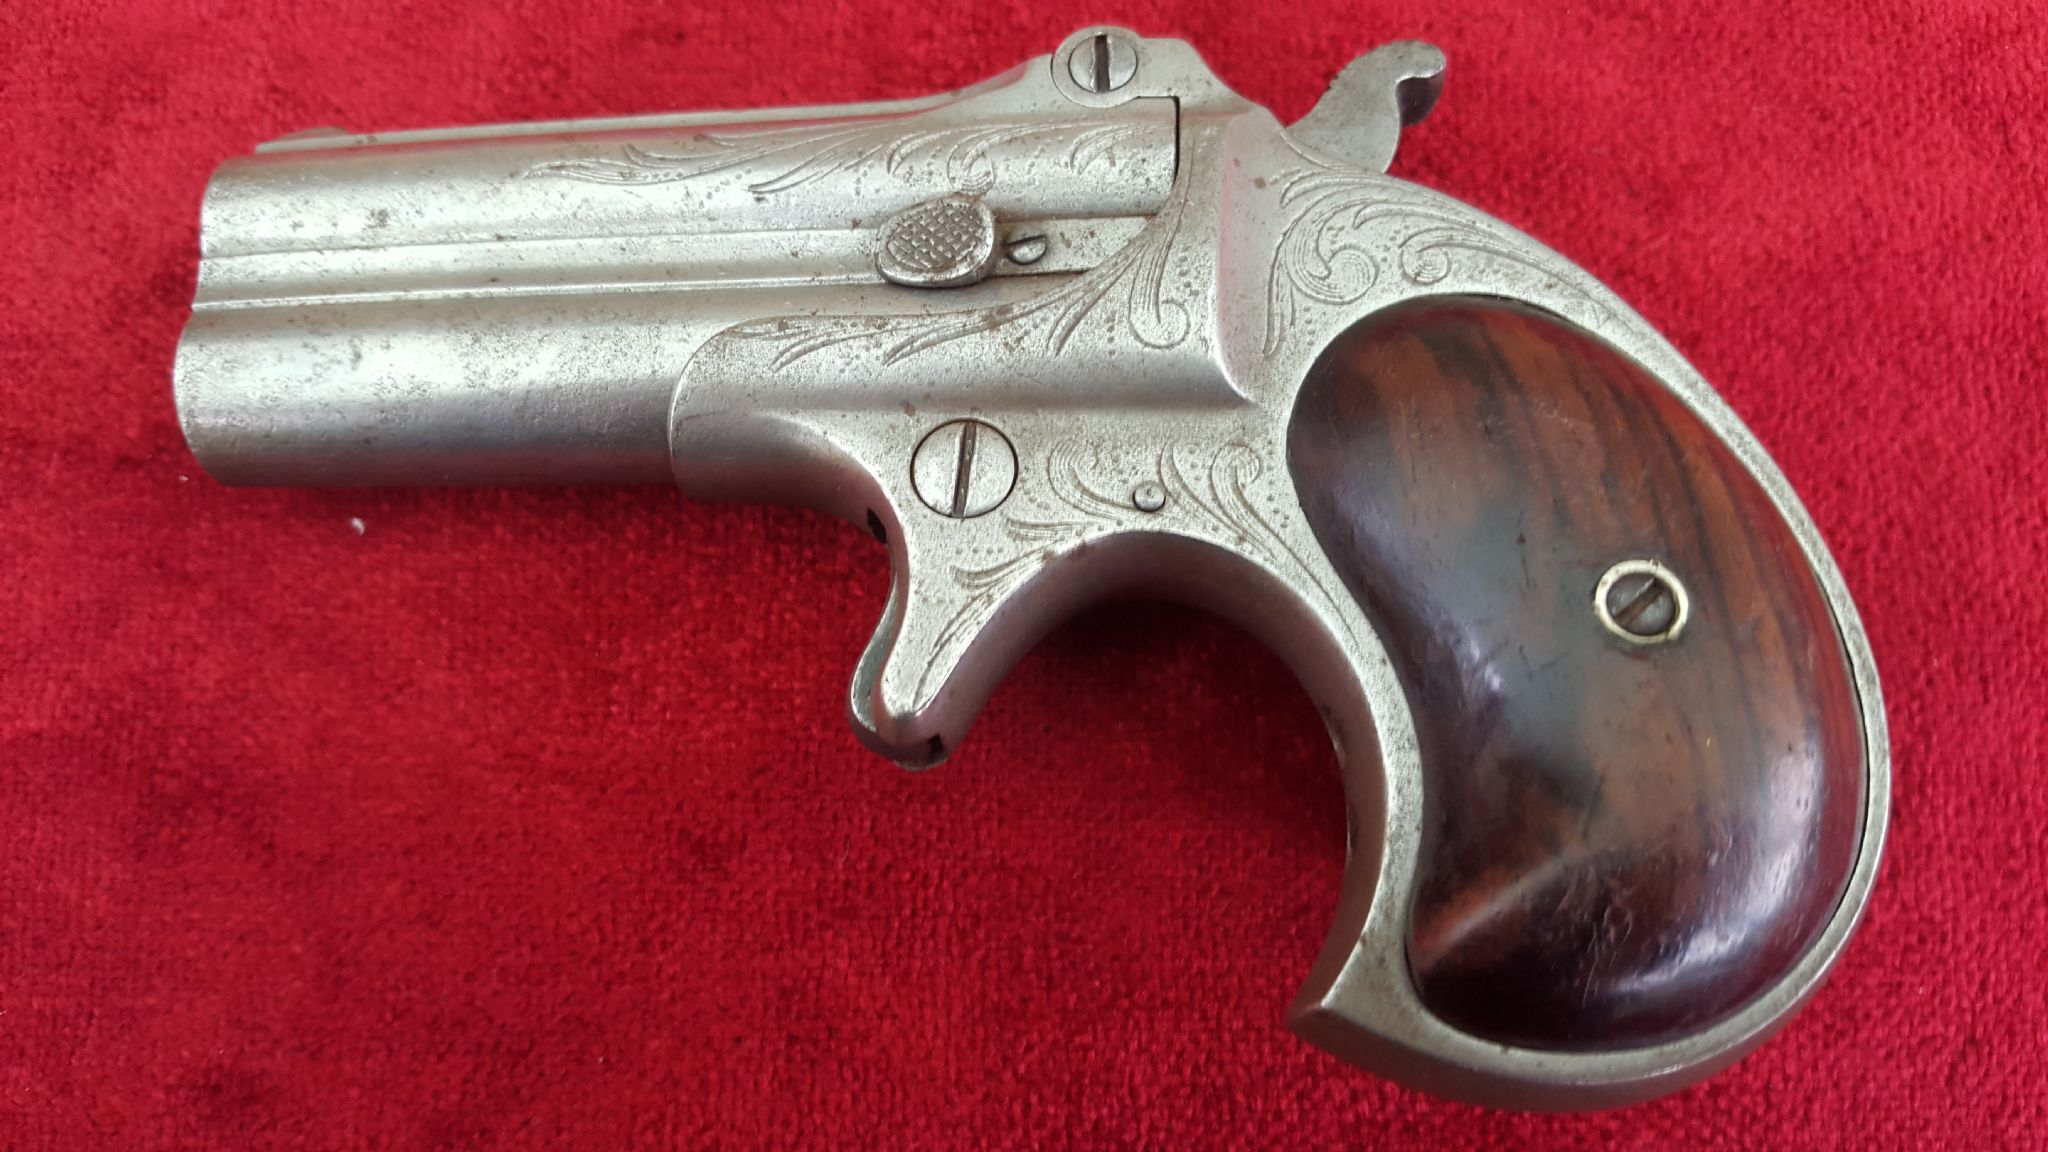 X X X SOLD X X X A good antique Remington double barrelled Gambler s